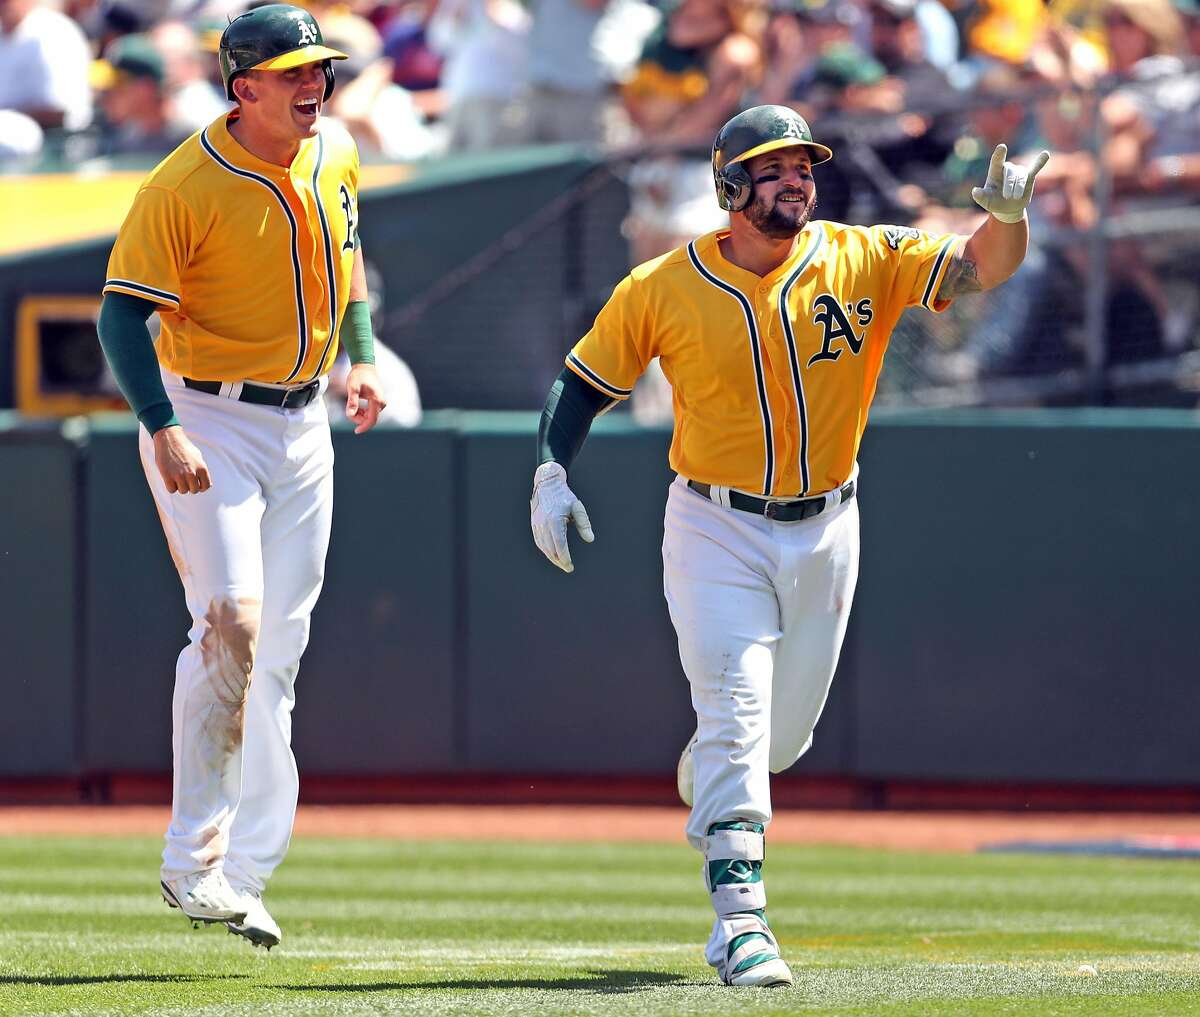 Oakland Athletics' Yonder Alonso and Ryon Healy react to Alonso's 2-run home run in 4th inning against Detroit Tigers during MLB game at Oakland Coliseum in Oakland, Calif., on Sunday, May 7, 2017.